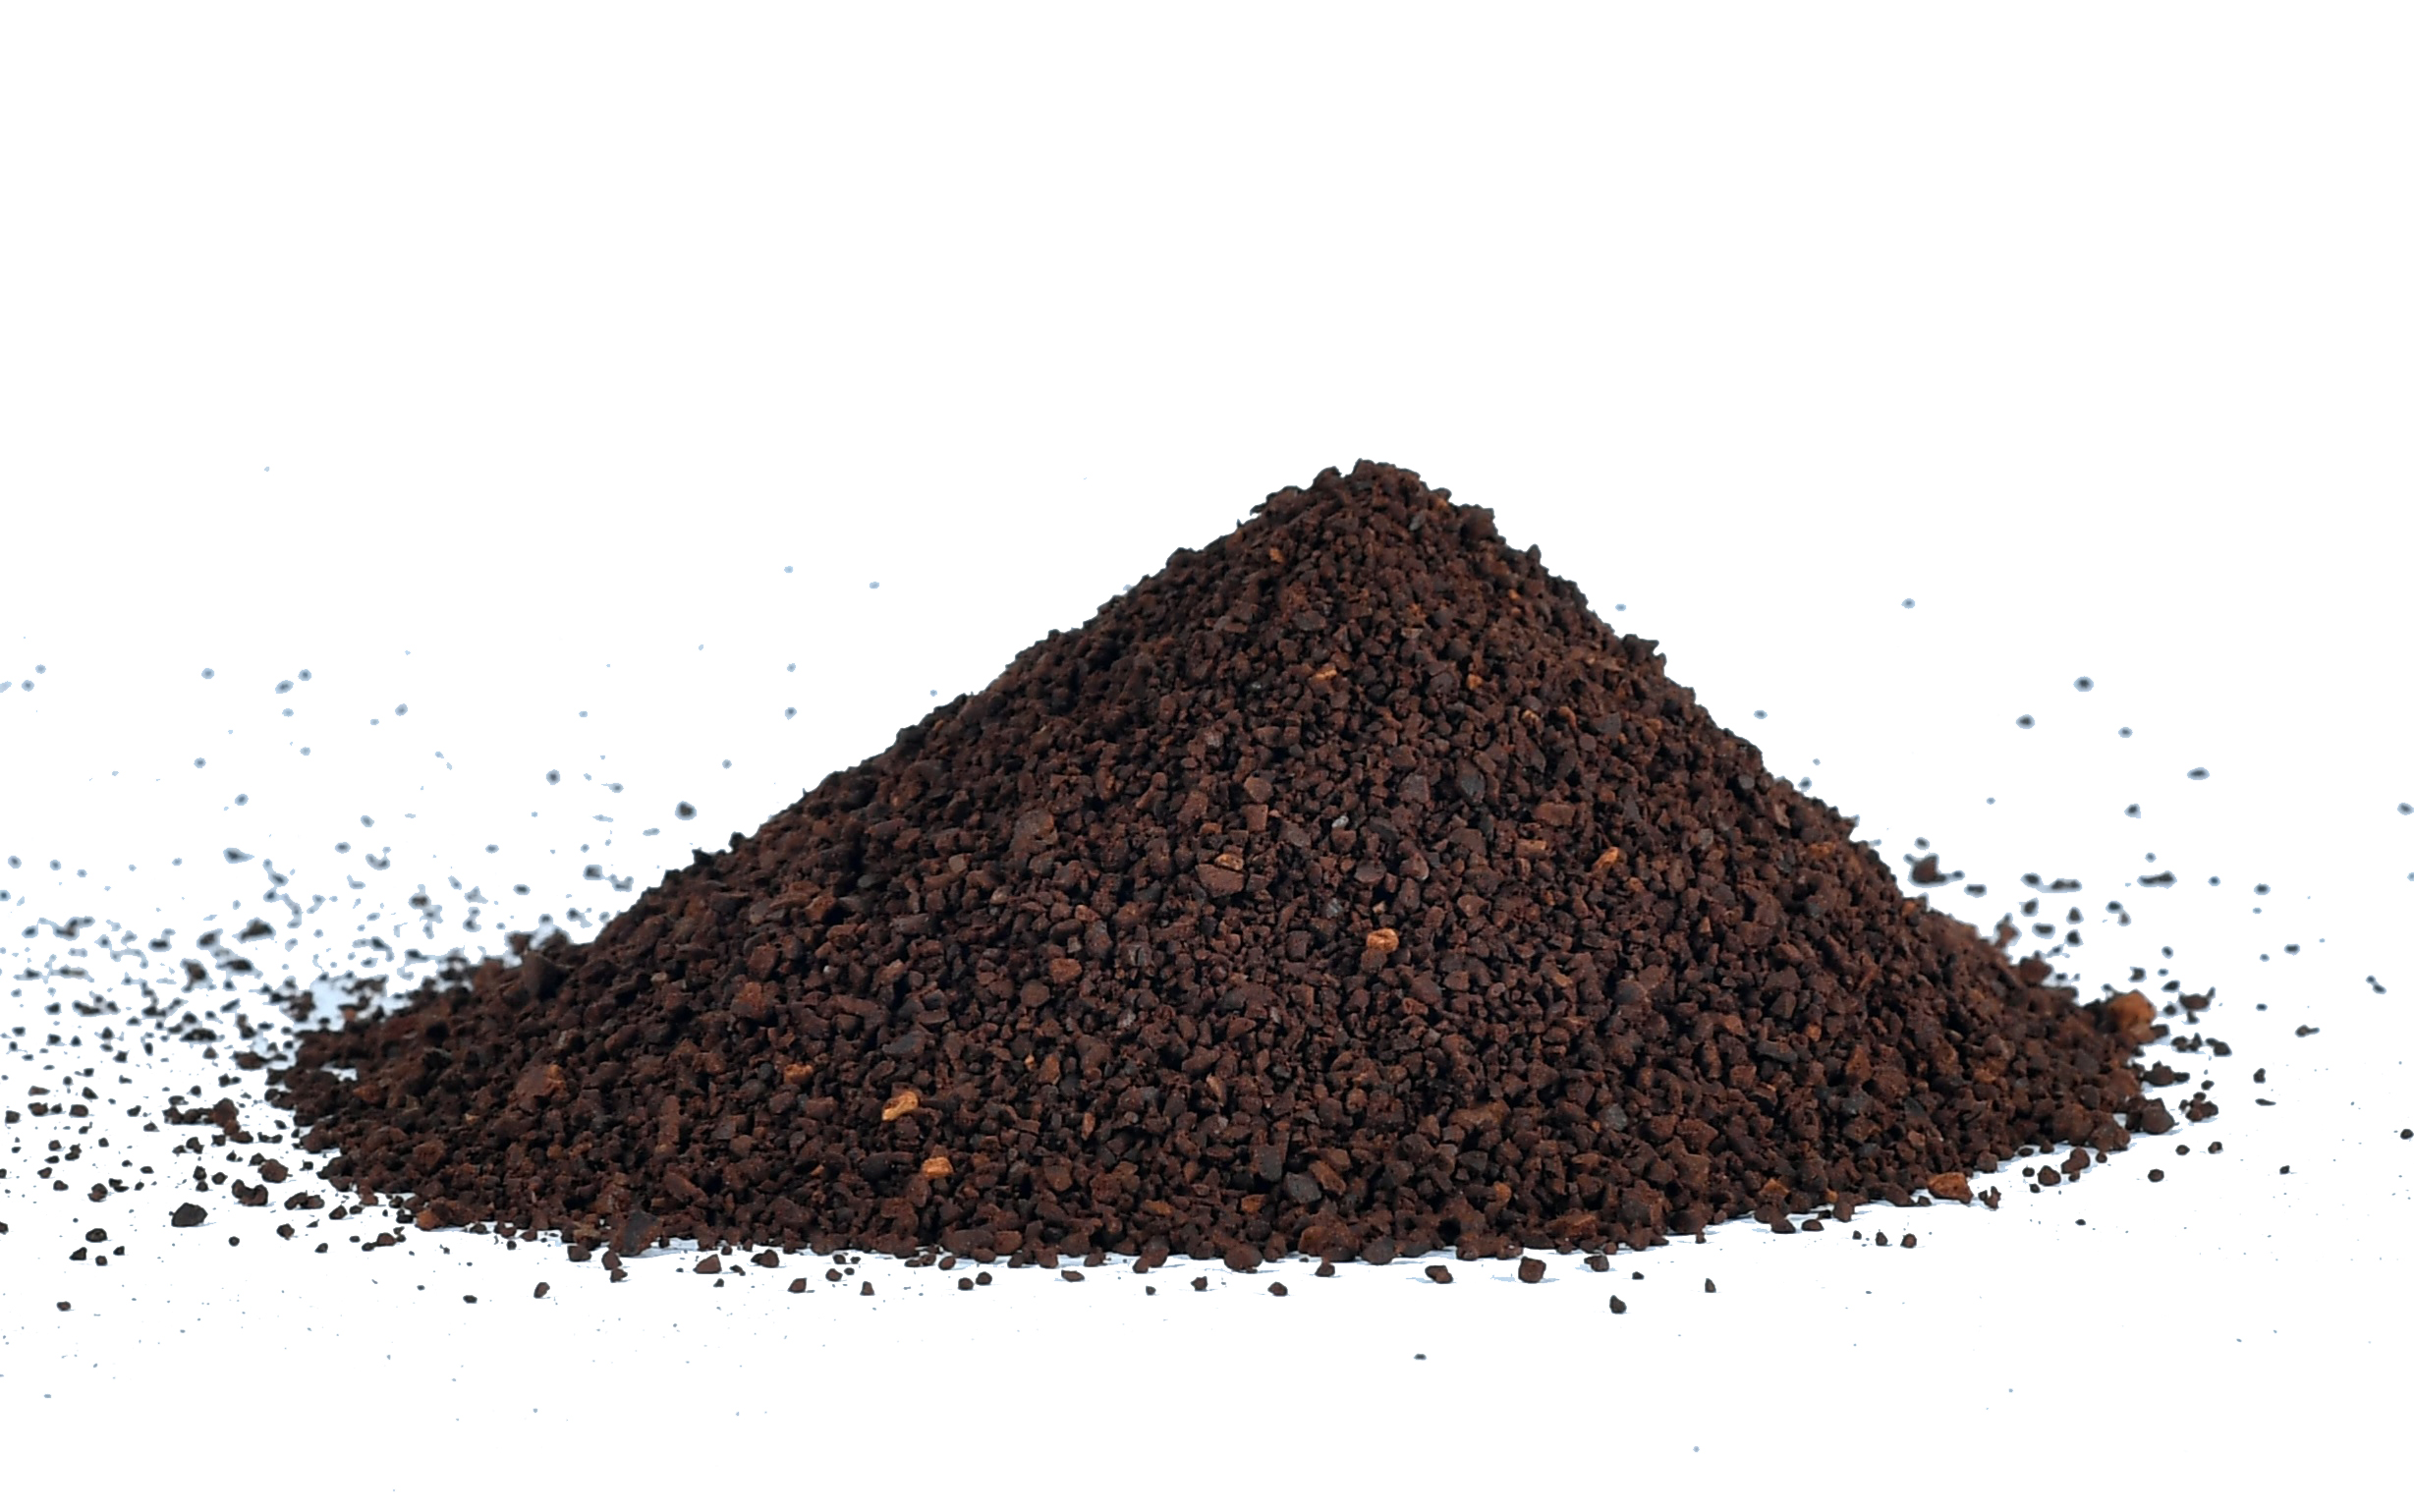 Coarse Ground Coffee Powder